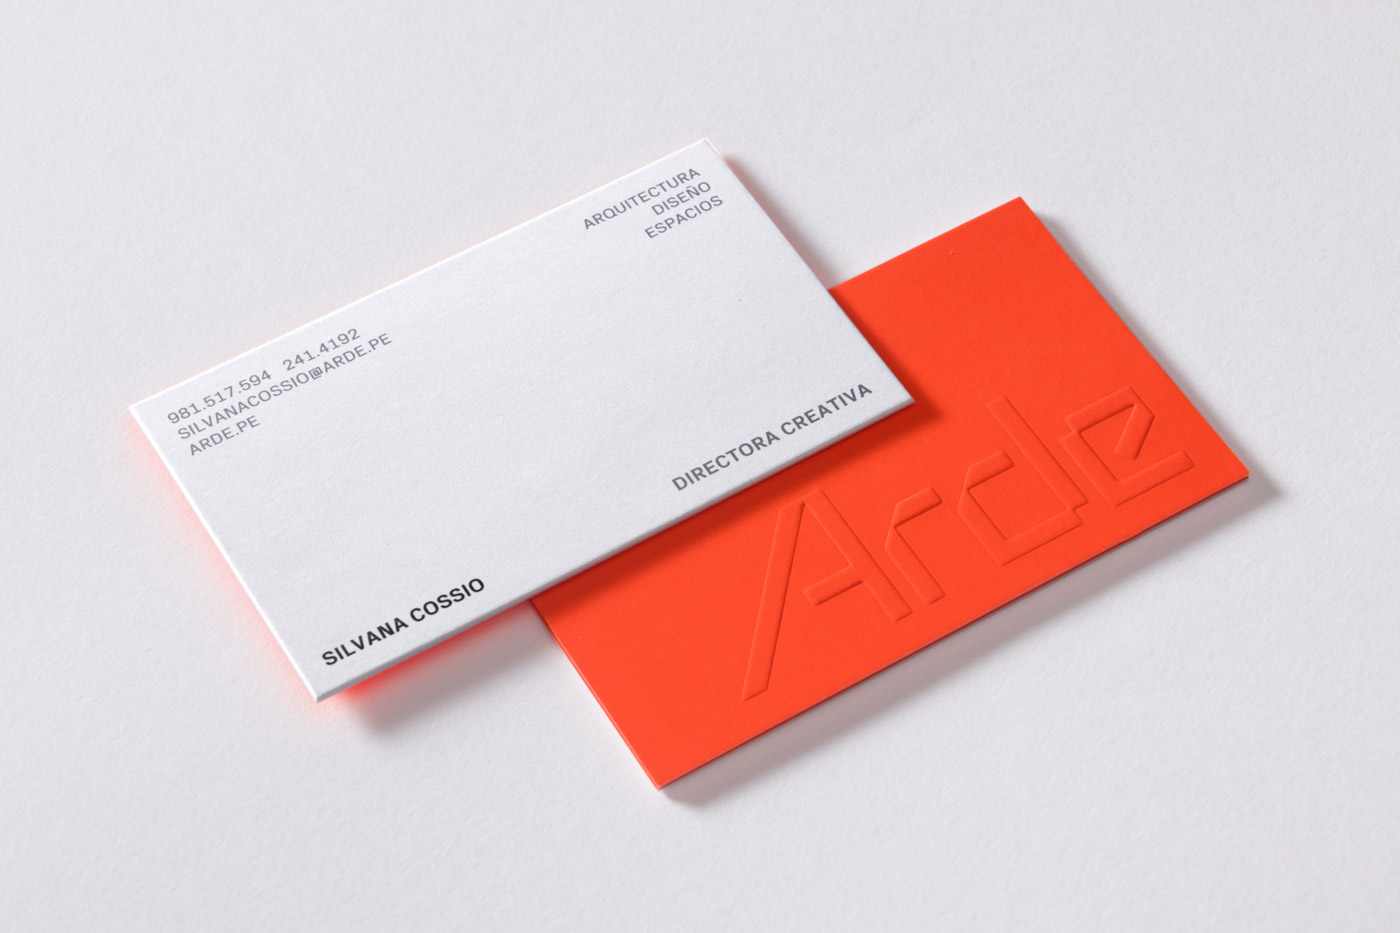 Architect business card cool architect business card pmvchamara u affordable best business card designs inspiration u gallery u bpuo with architect business card reheart